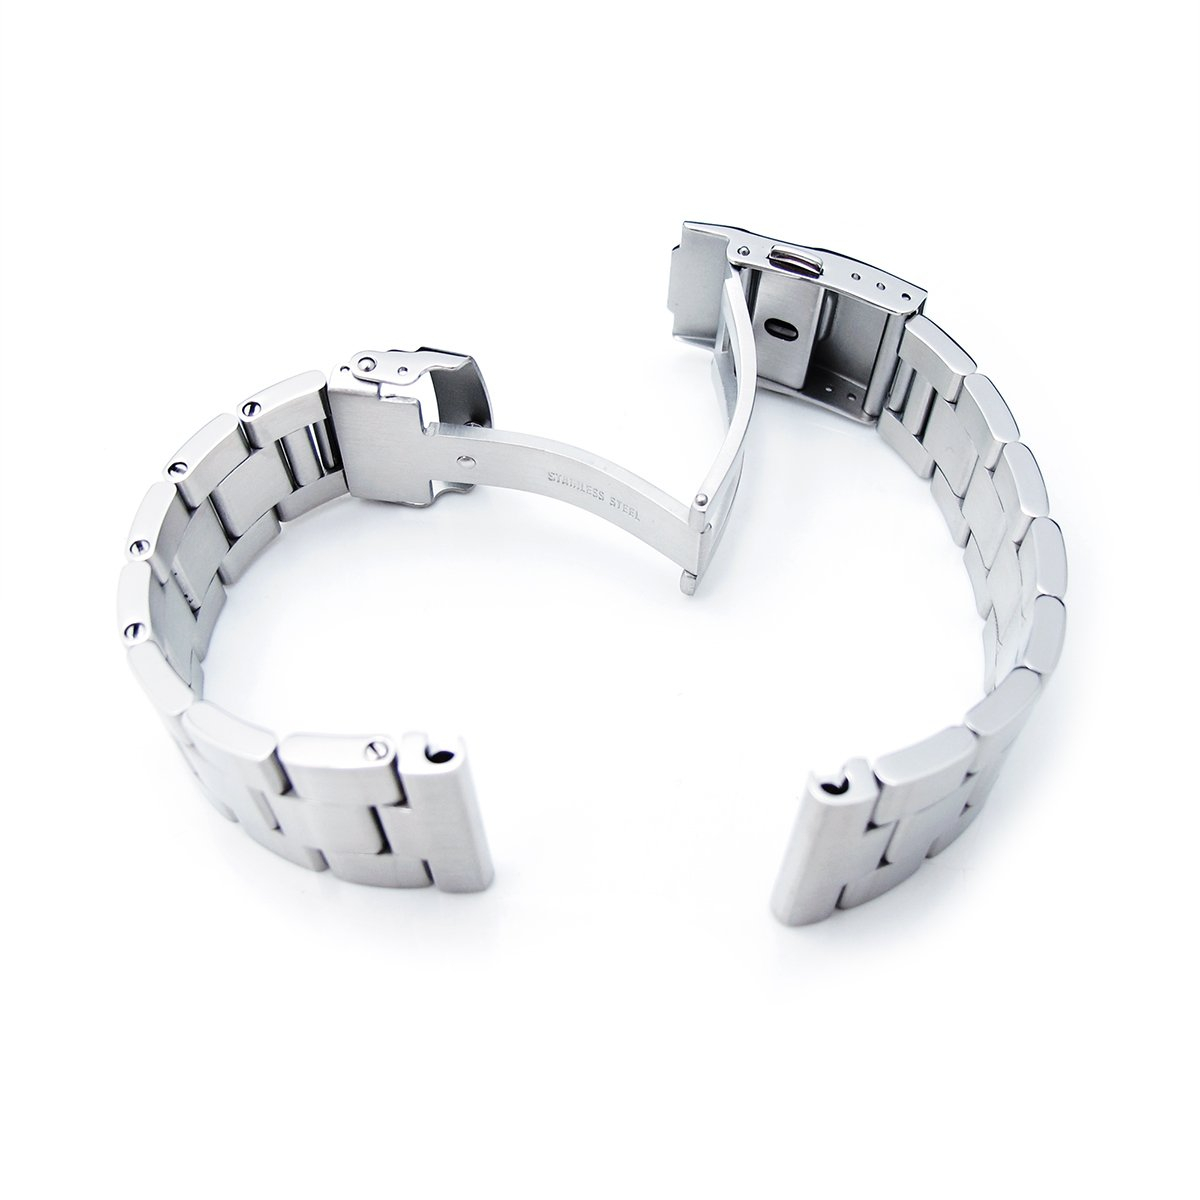 22mm Super Oyster Type II watch bracelet common use for diver watch, straight end by 22mm Metal Band by MiLTAT (Image #4)